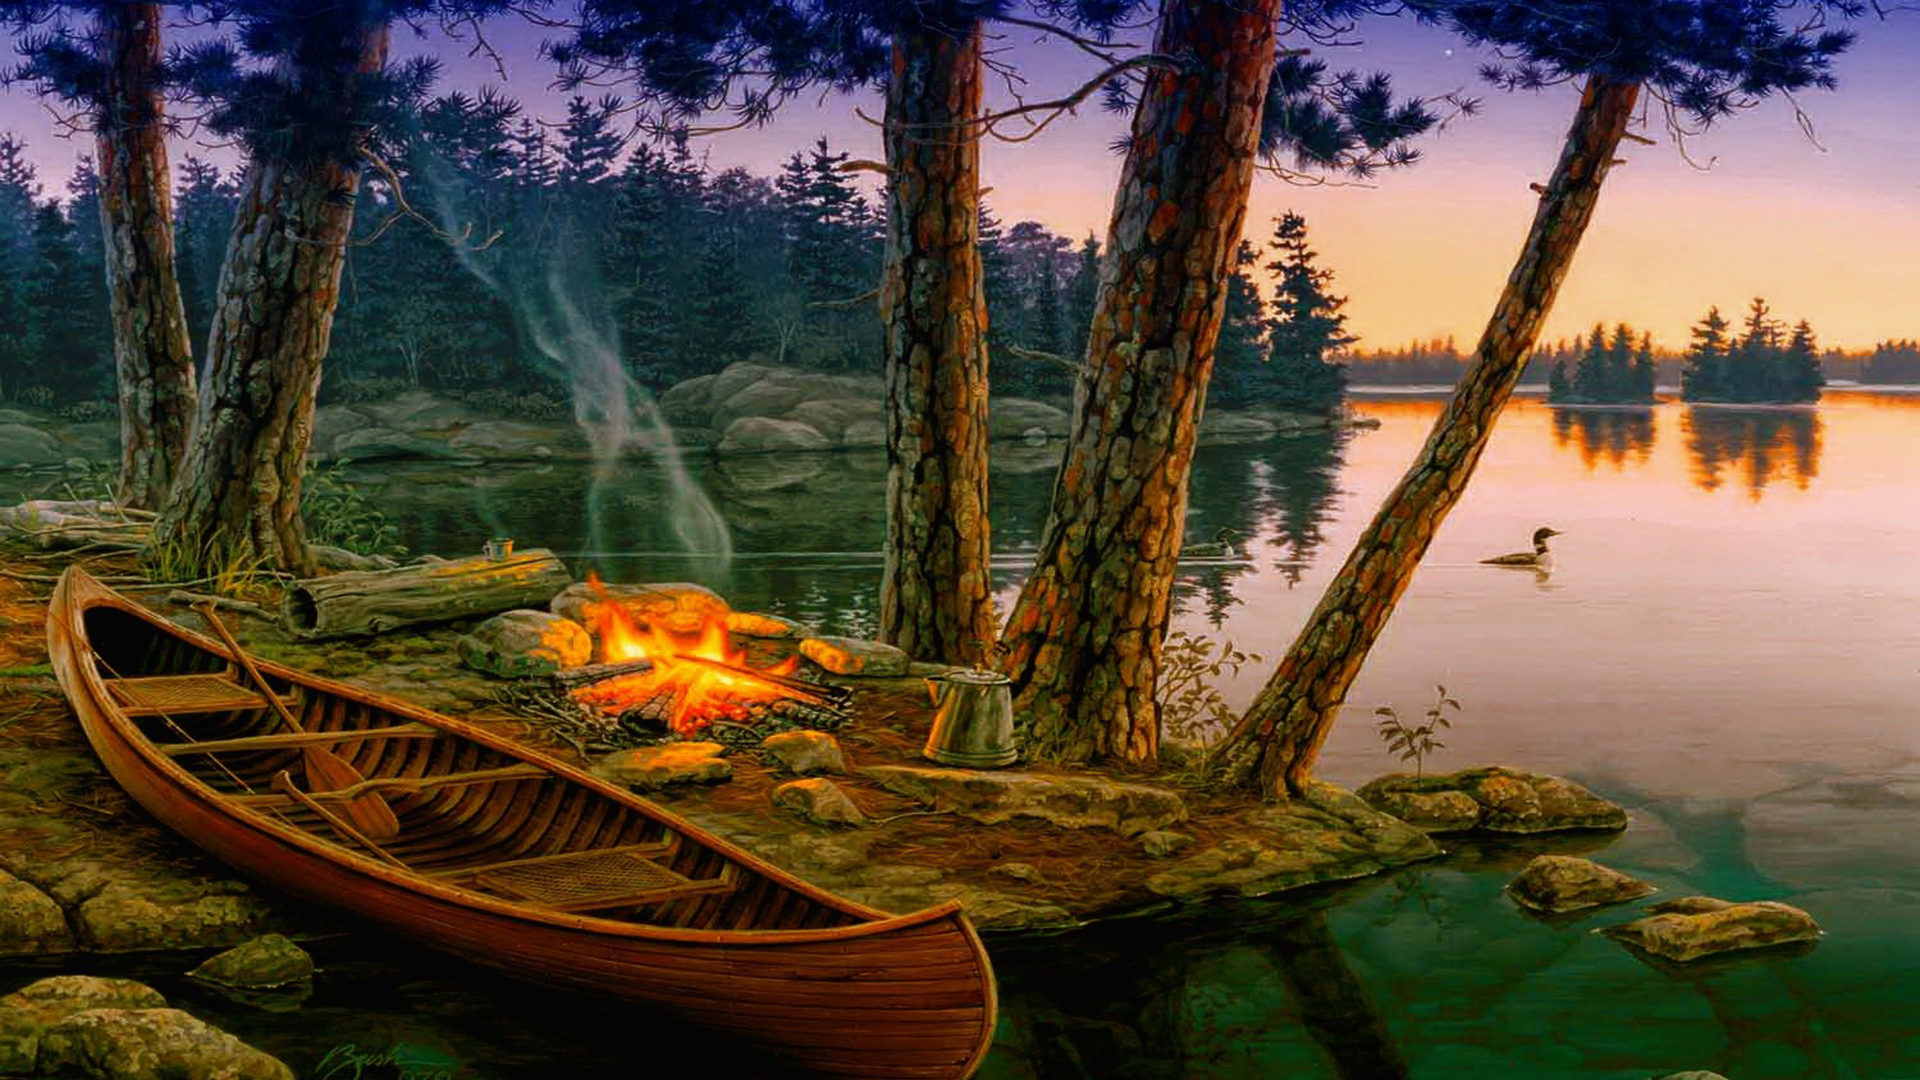 Cars 2 Wallpaper Free Download Romantic Background Lake Trees Boat Fire Wallpapers13 Com